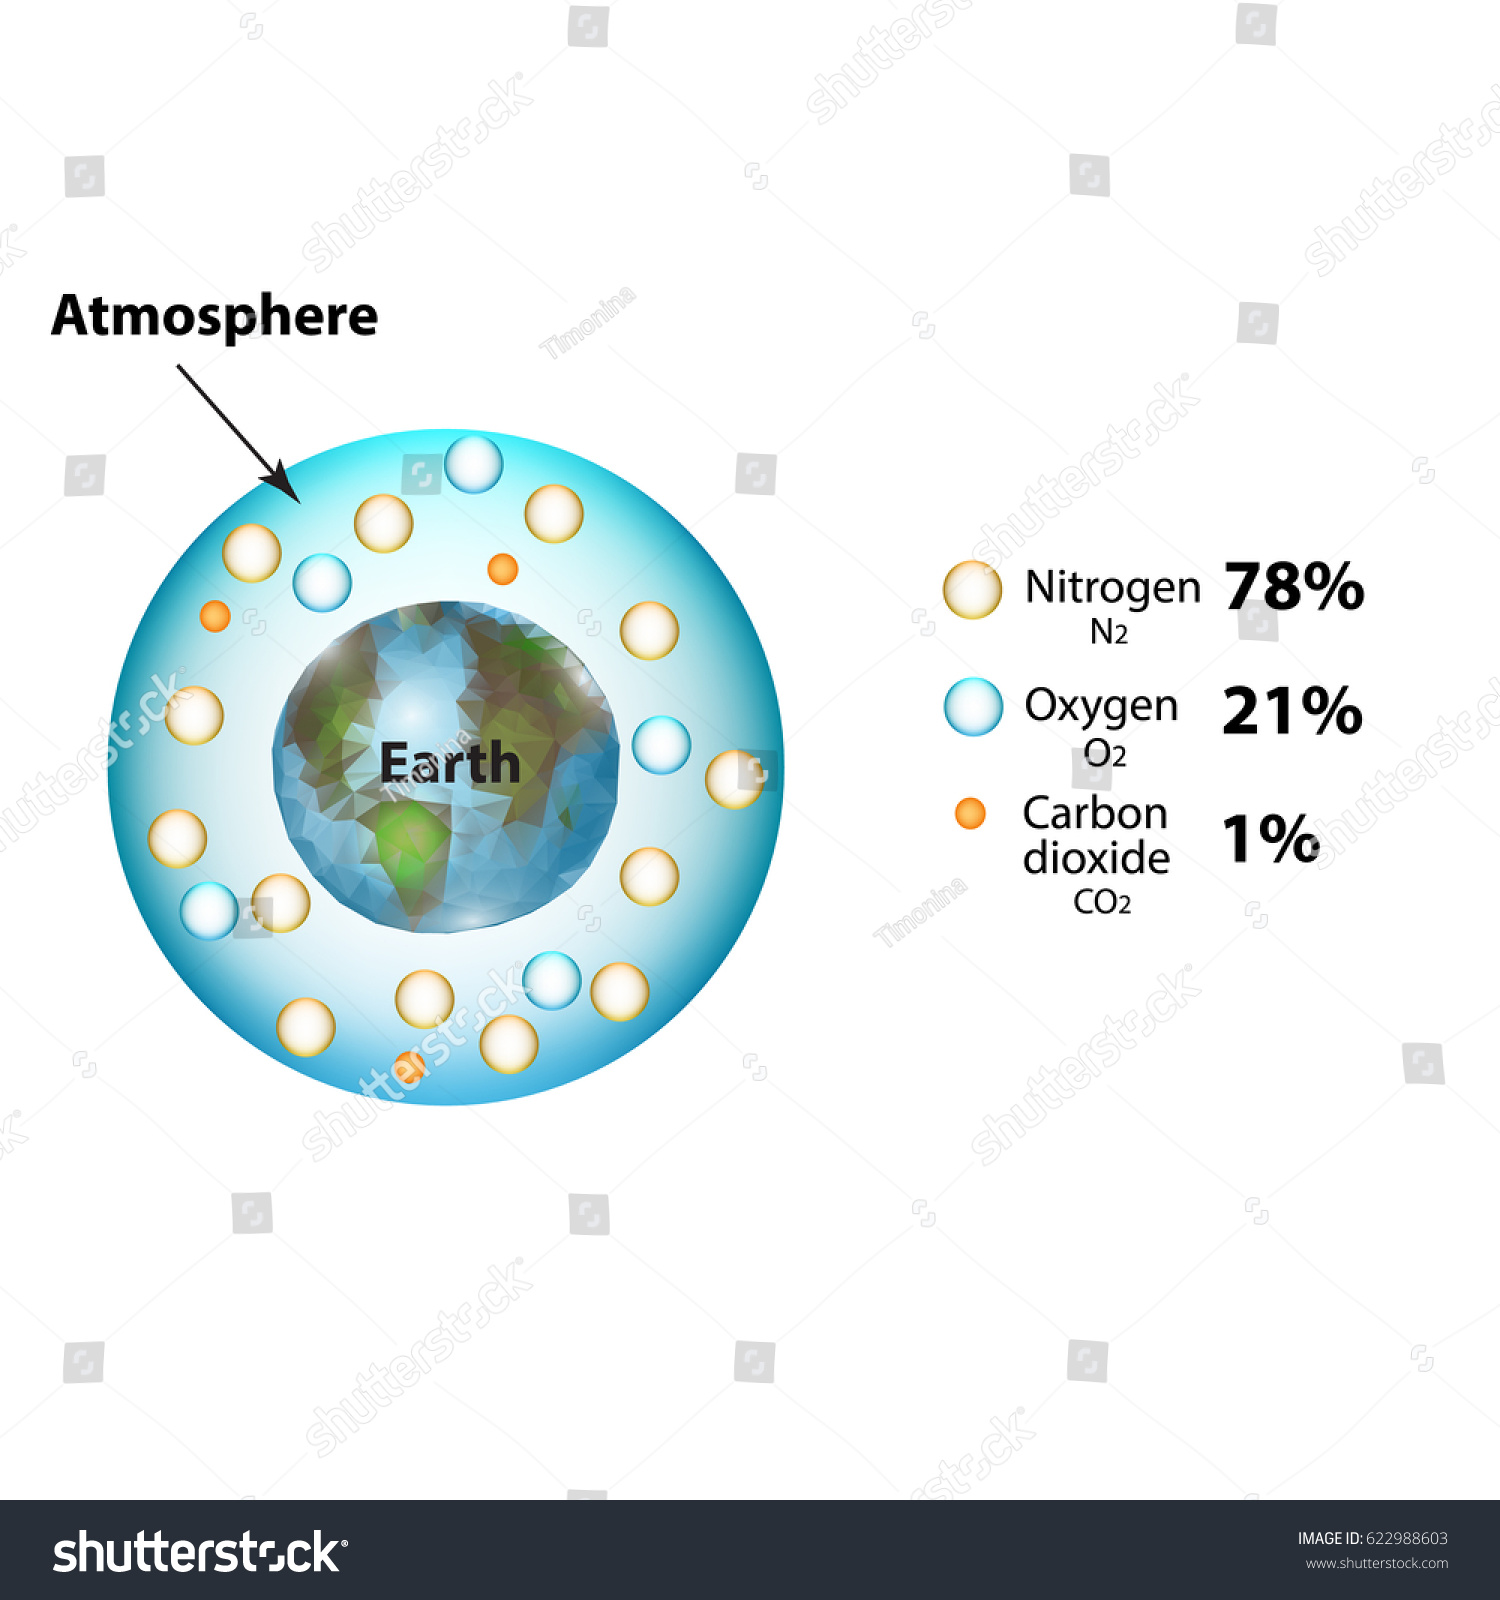 hight resolution of the atmosphere of the earth the composition of the atmosphere nitrogen carbon dioxide oxygen infographics illustration on isolated background